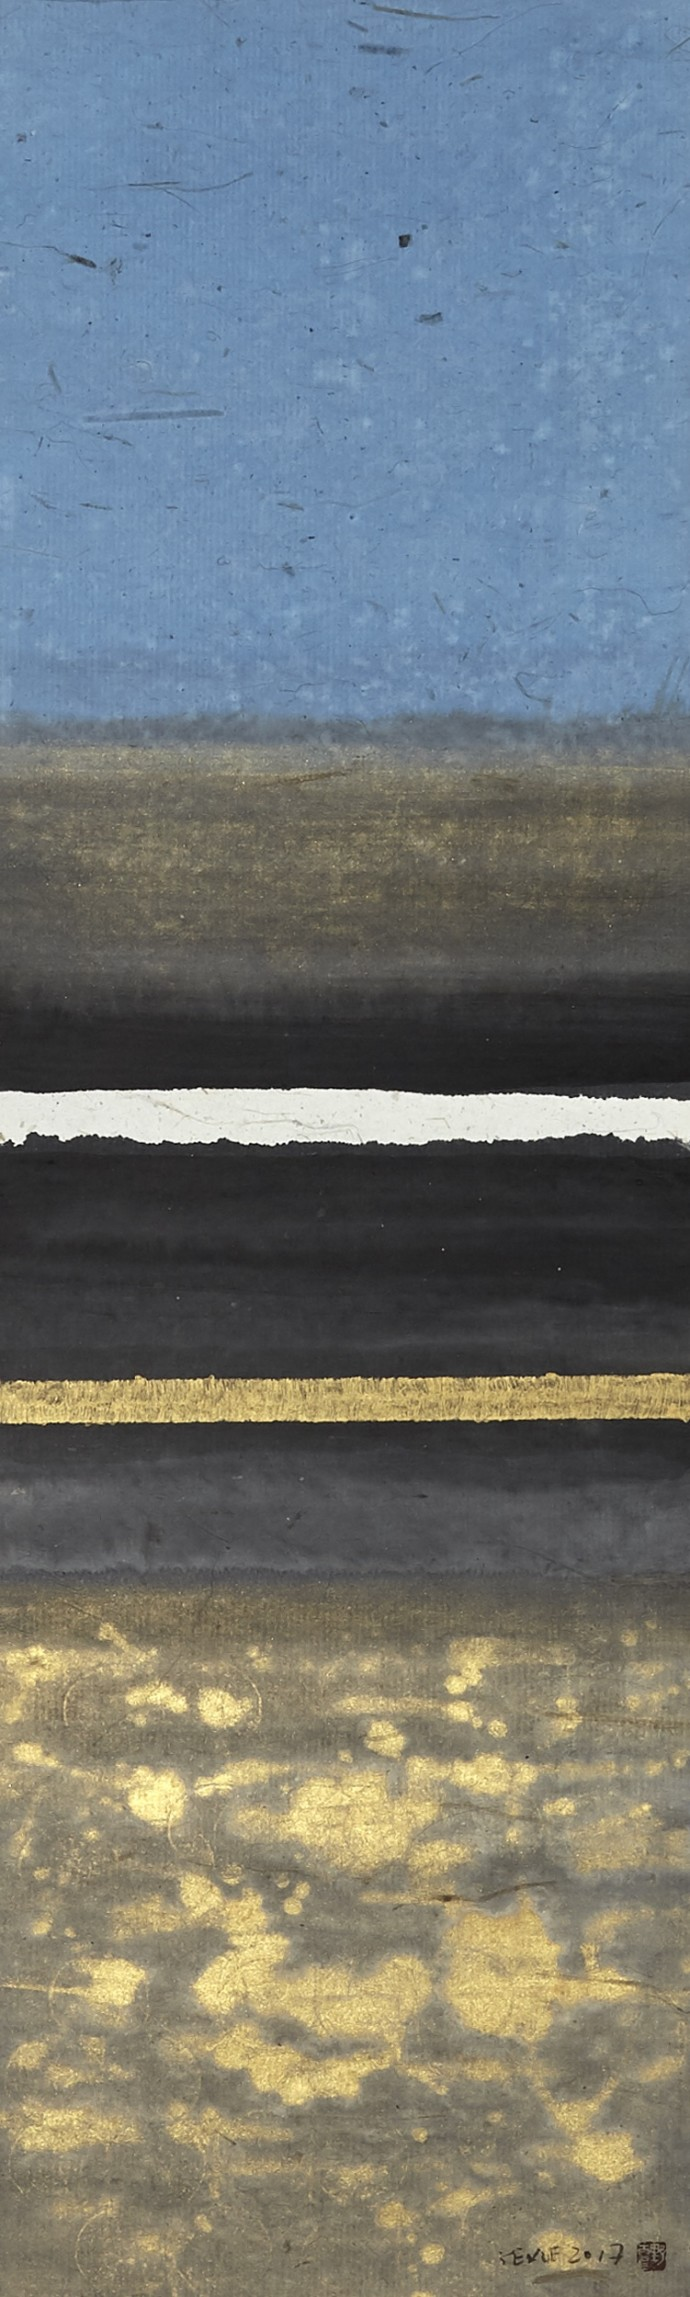 Ye Xue, Yellow River 21, 2019, Chinese ink and gold acrylic pigment on paper, 146 x 43 cm, 57 1/2 x 16 7/8 in, (unframed)